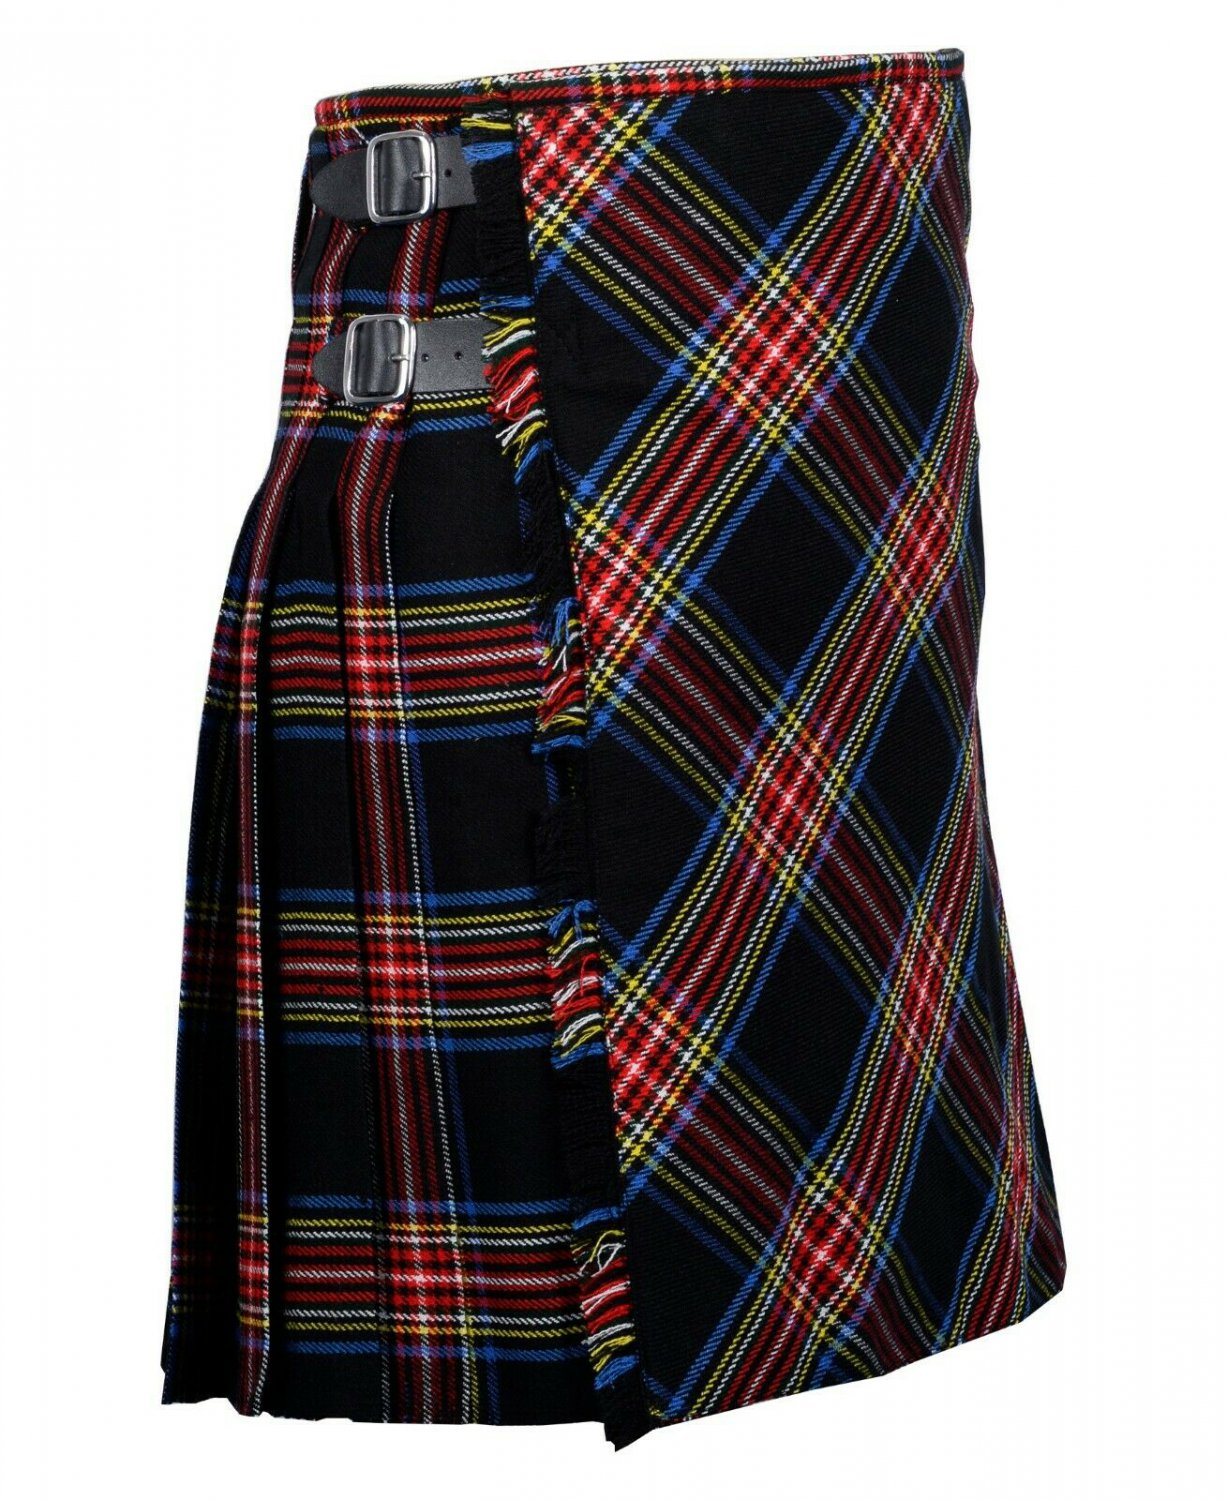 60 inches waist Bias Apron Traditional 5 Yard Scottish Kilt for Men - Black Stewart Tartan